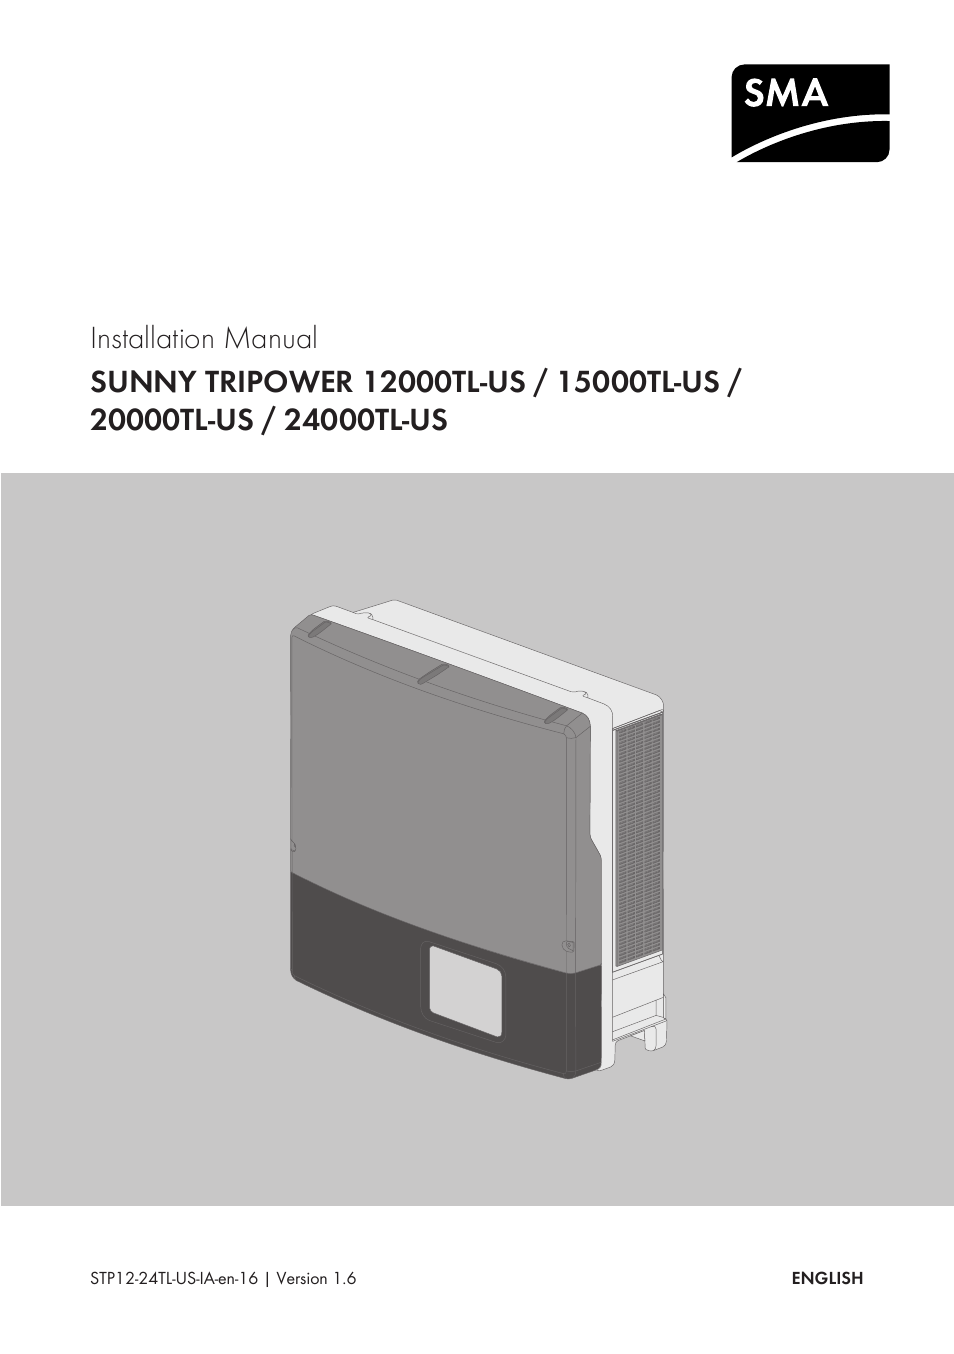 SMA STP 12000TL-US User Manual | 78 pages | Also for: STP 15000TL-US, STP  20000TL-US, STP 24000TL-US